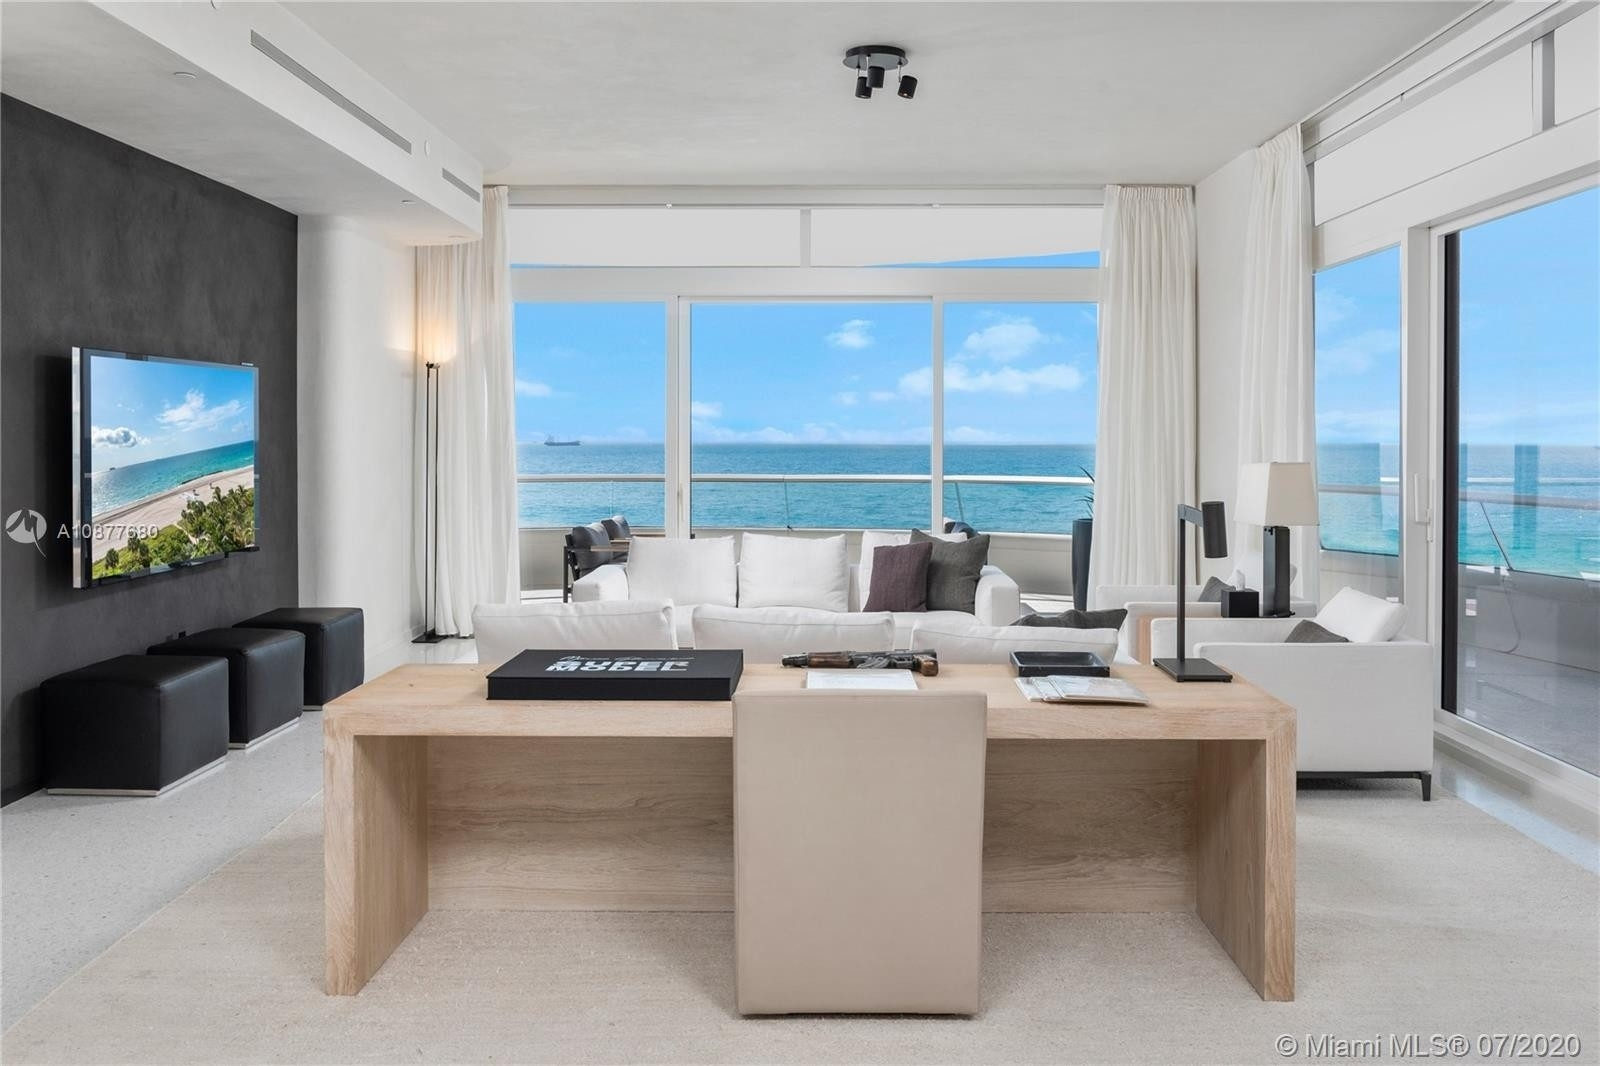 Condominium at 3315 Collins Ave , 8B Miami Beach